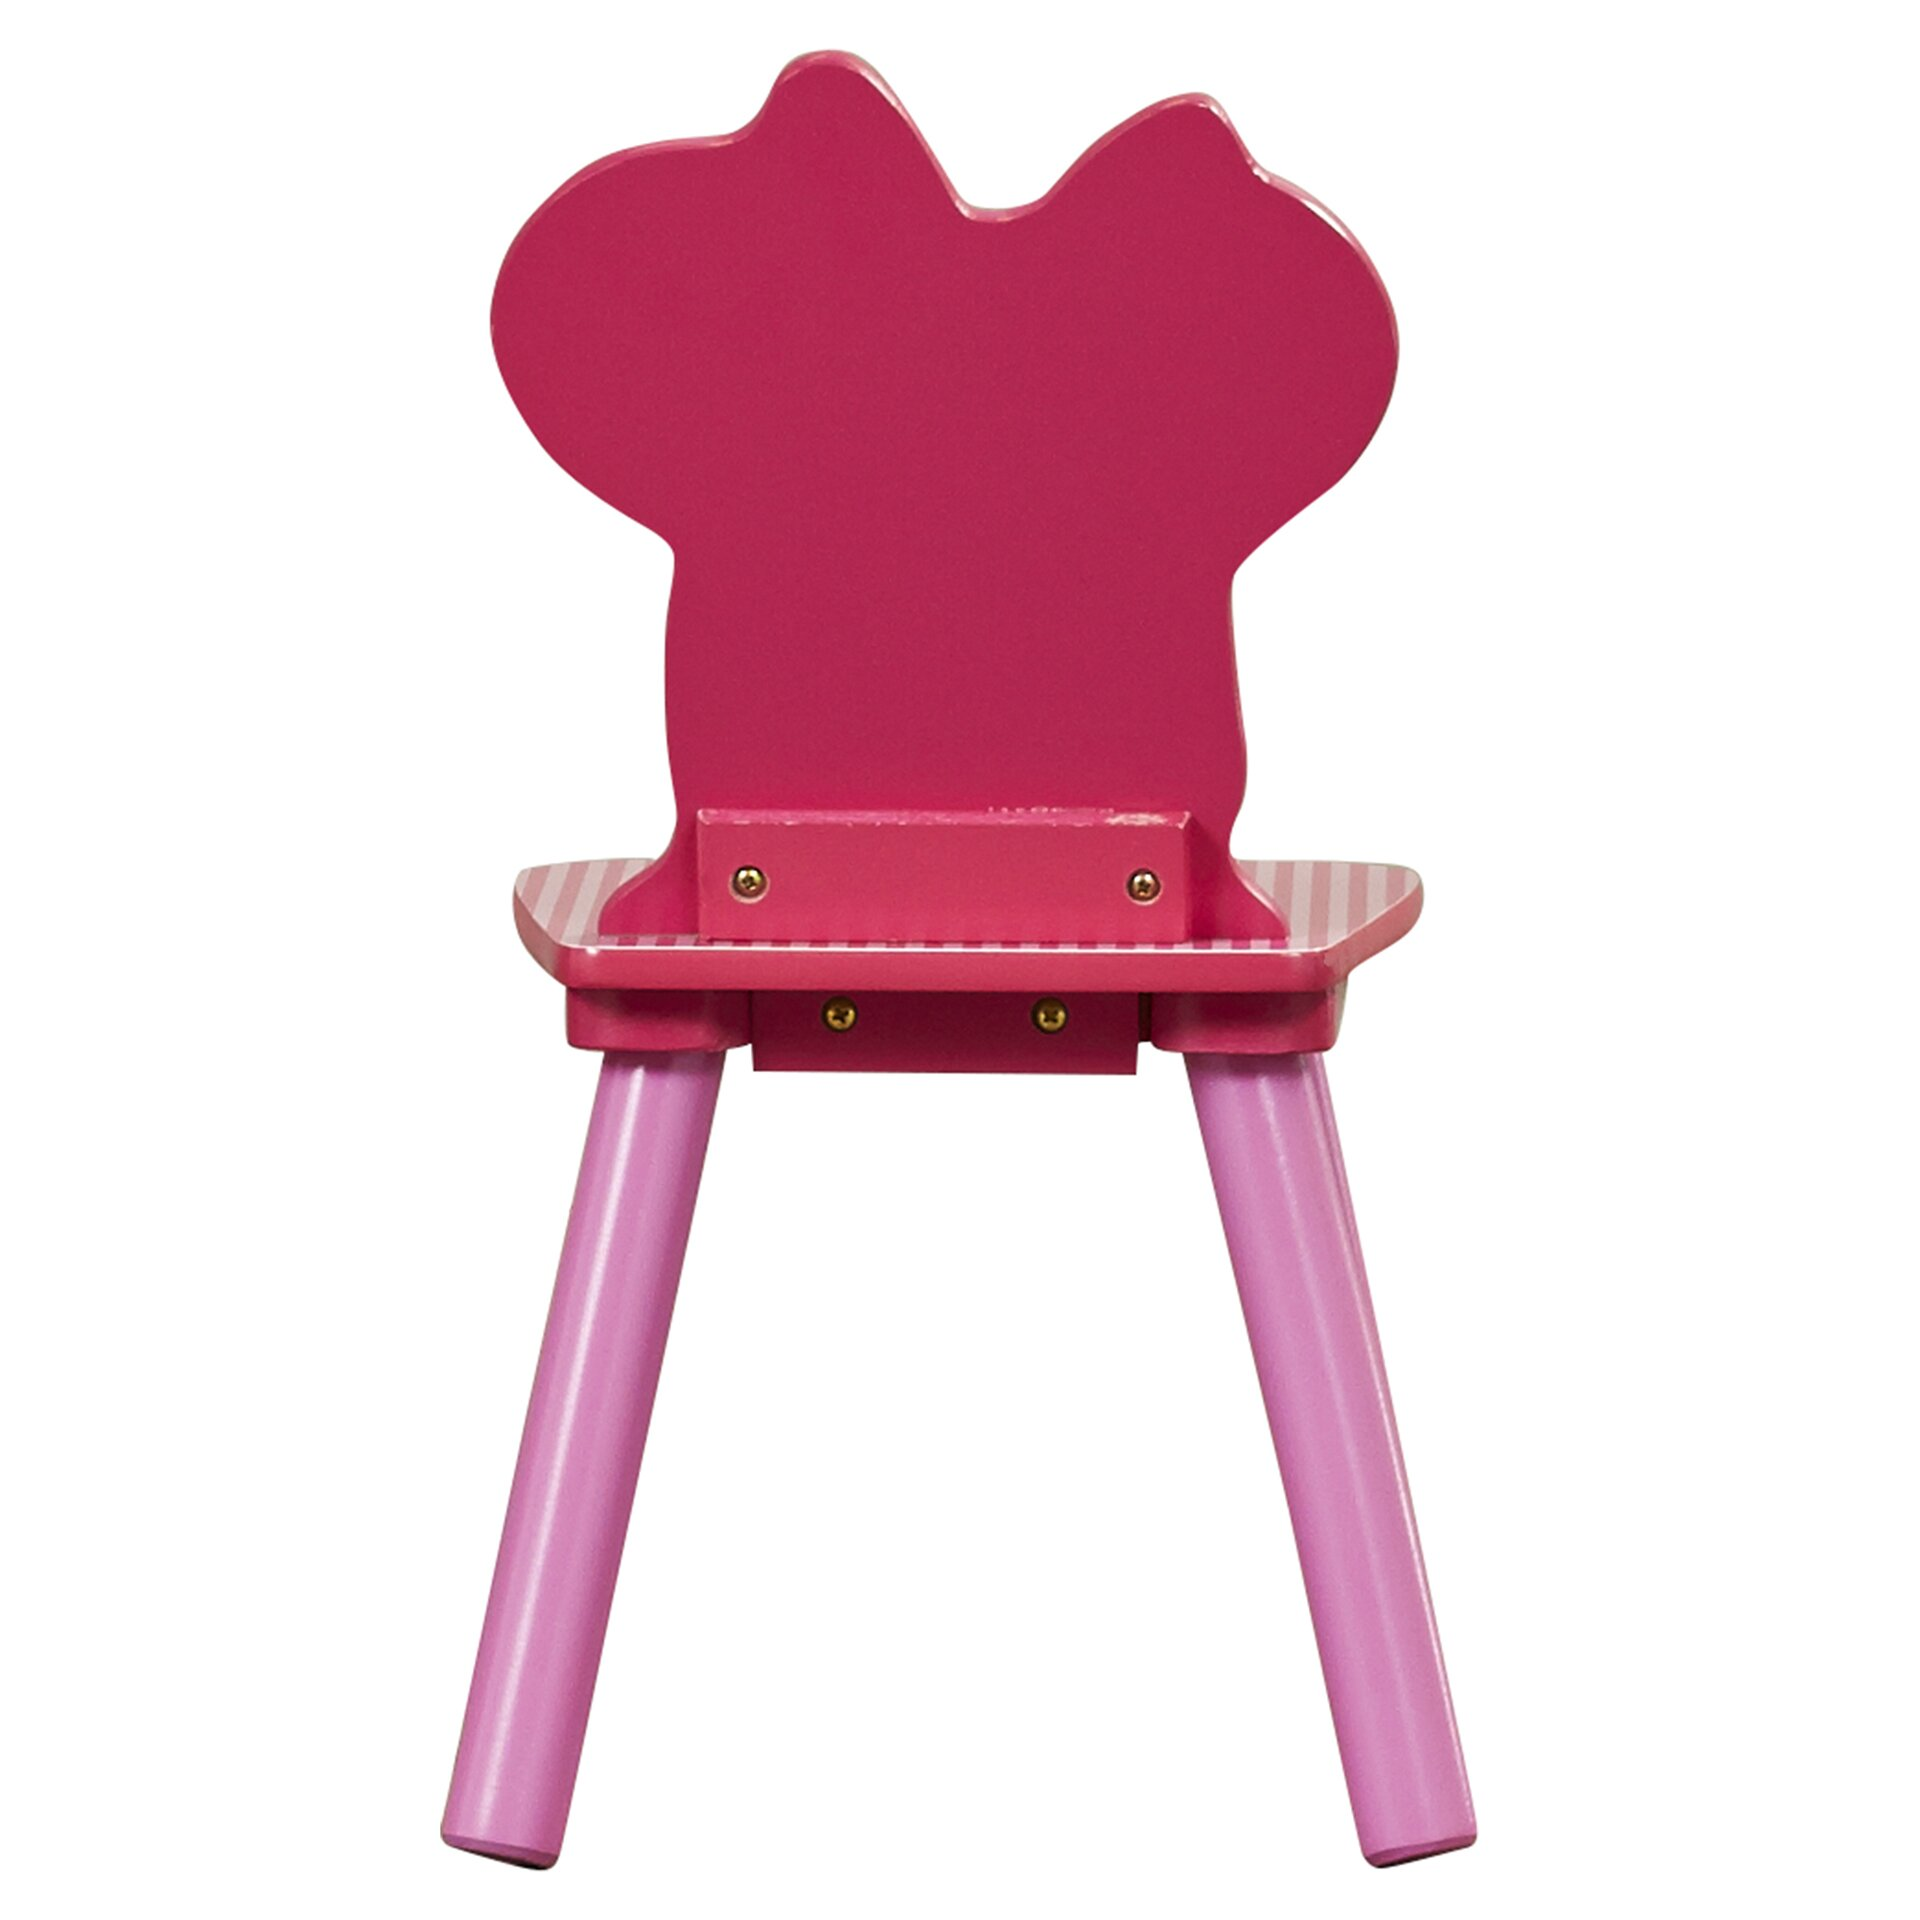 Exquisitely Minnie Mouse Chair For Kids Room Projects